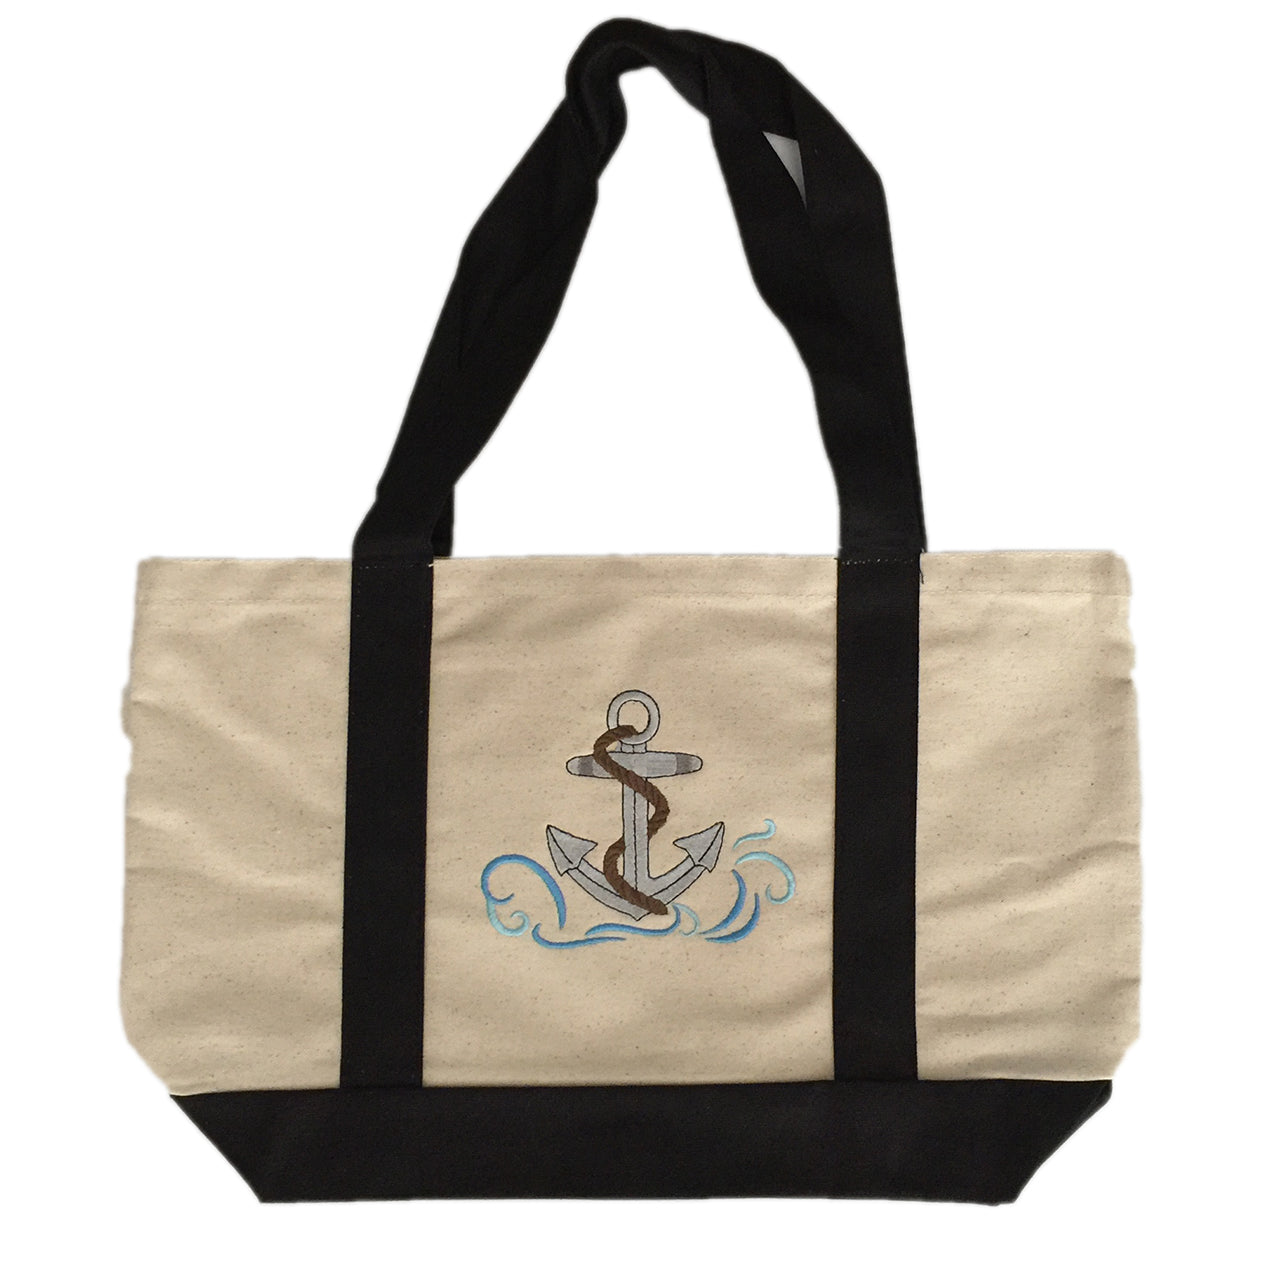 Anchor  Embroidered cotton canvas tote bag with black handles